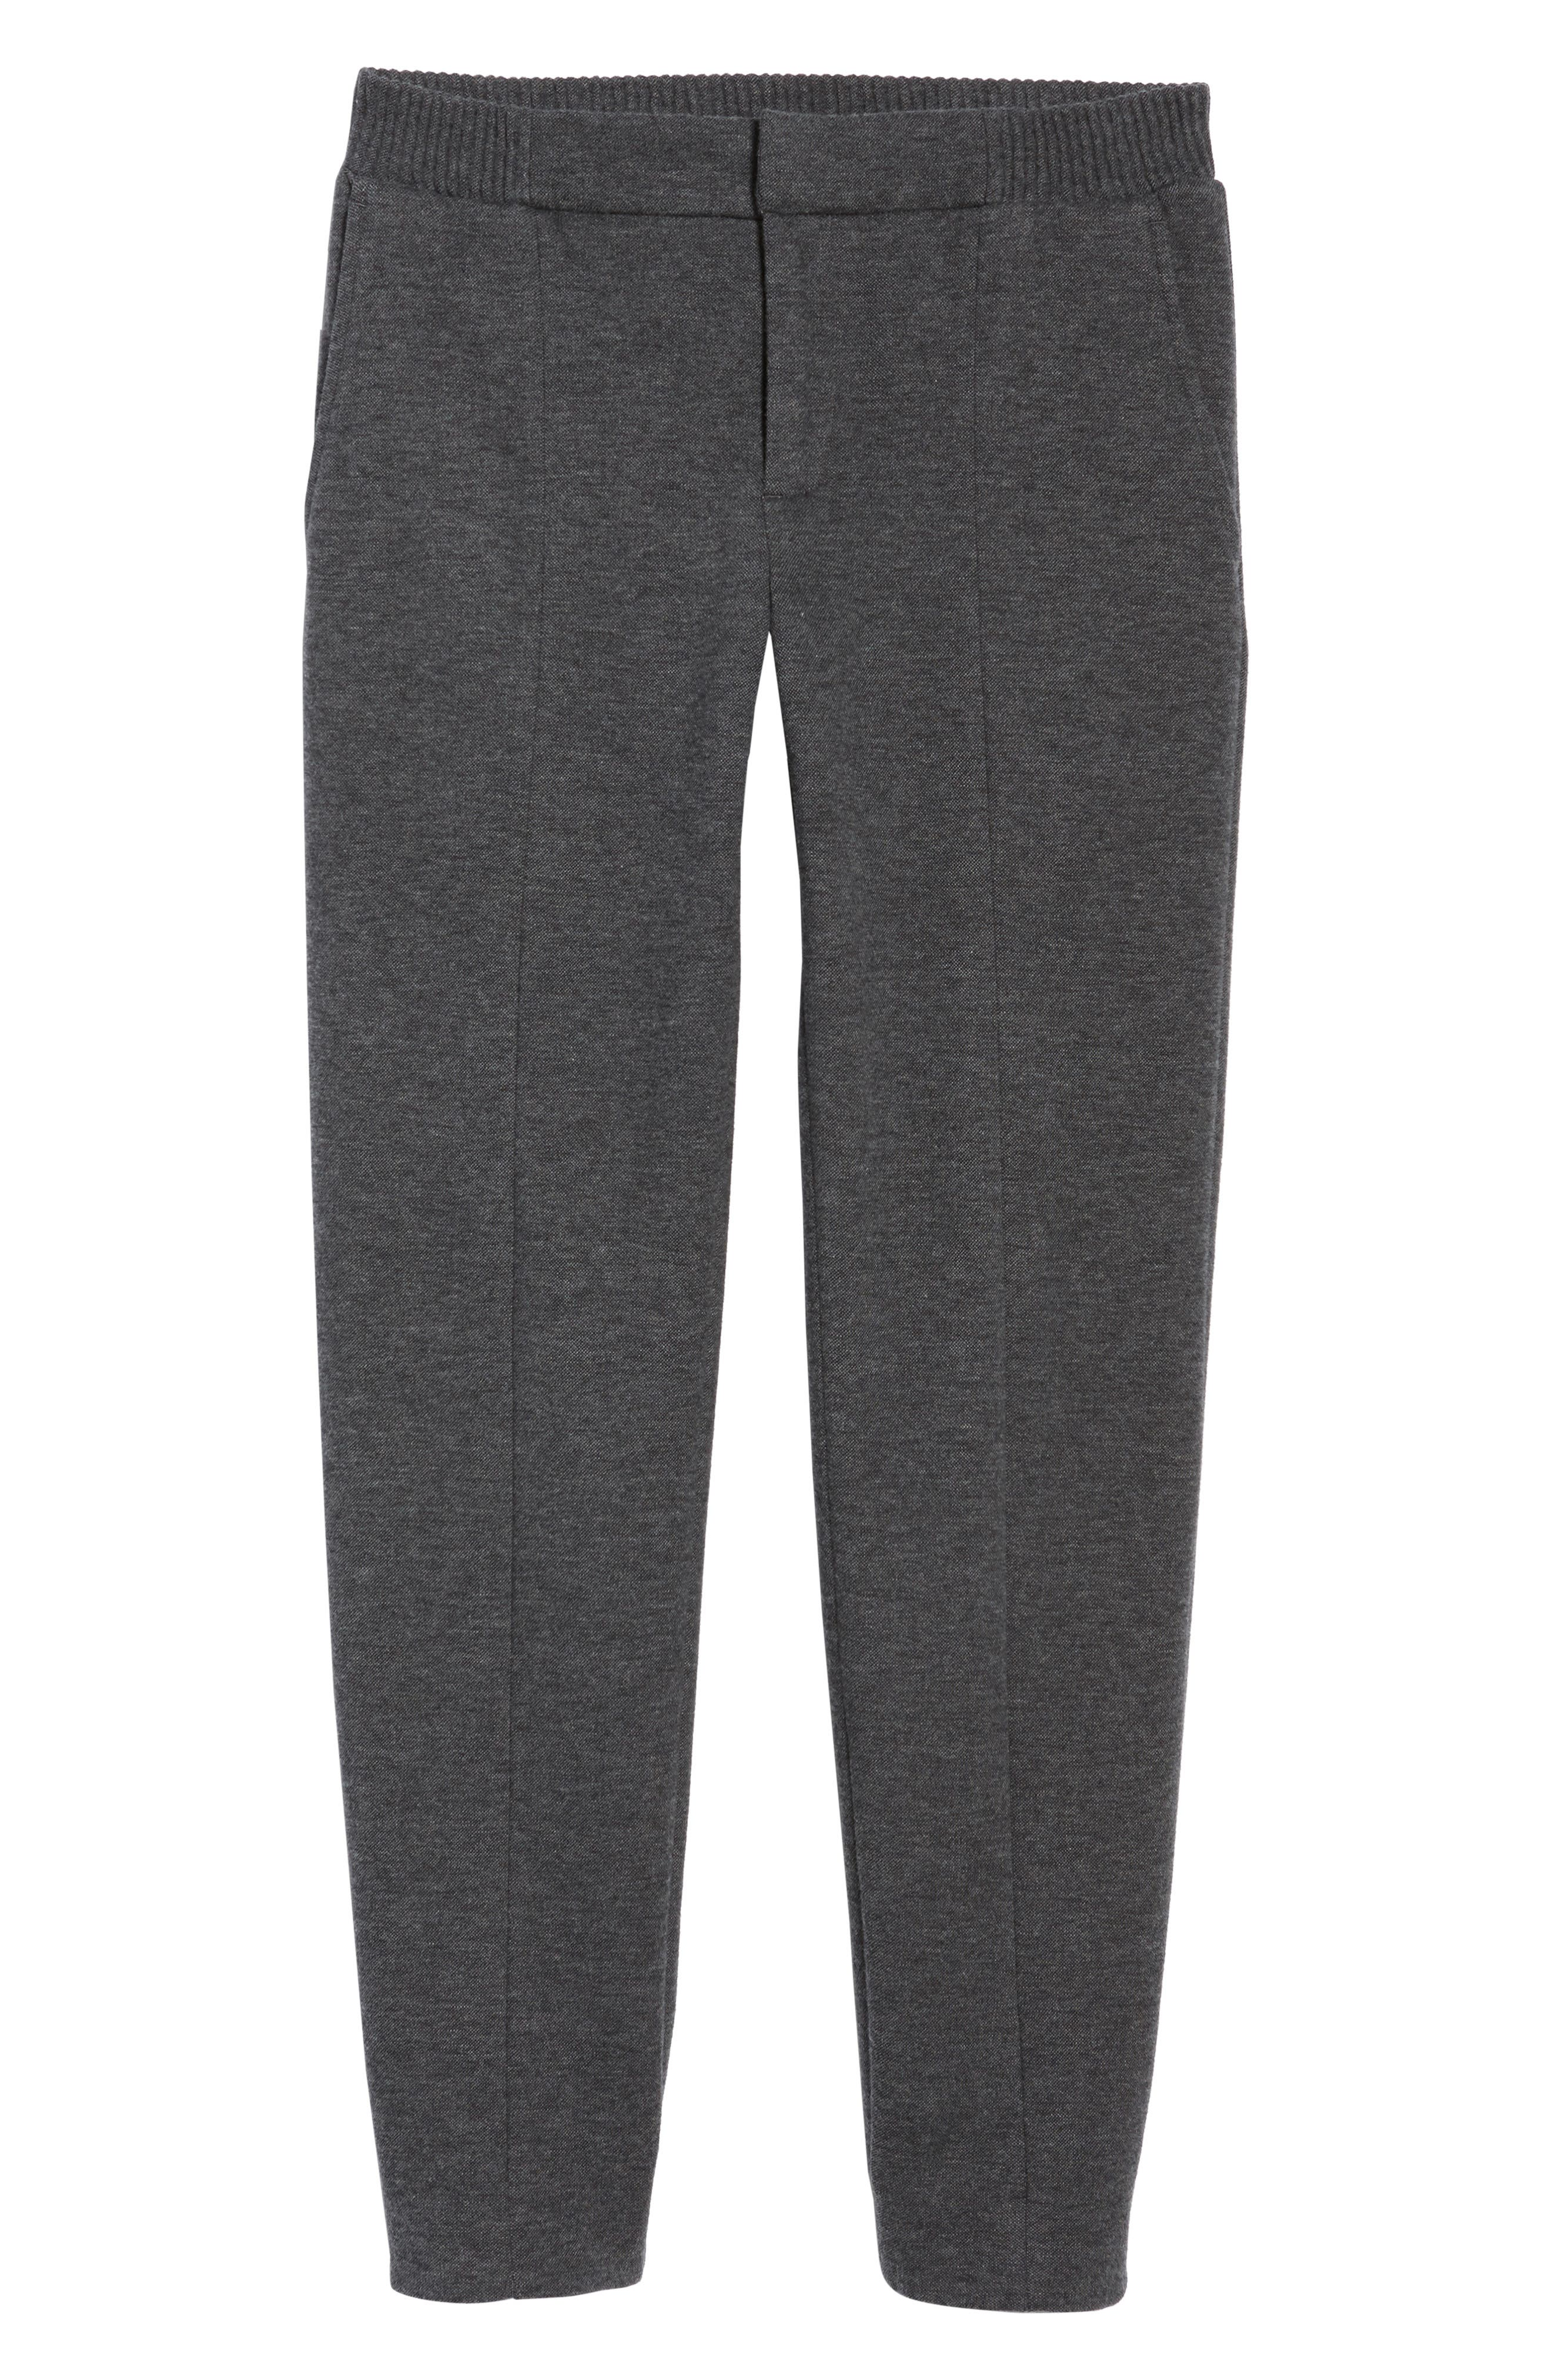 Jordan Flat Front Cotton Jogger Trousers,                             Alternate thumbnail 6, color,                             030